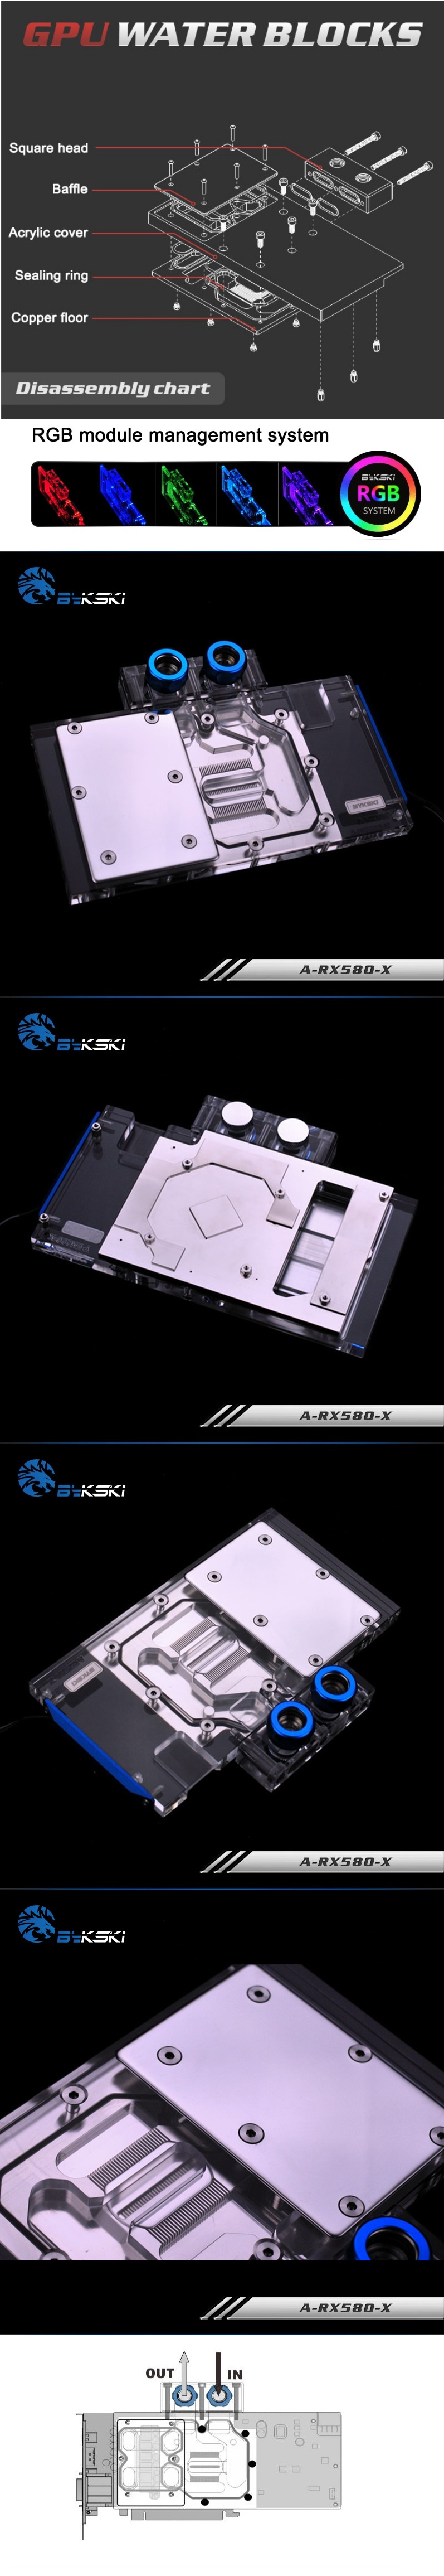 A large marketing image providing additional information about the product Bykski RX580-X Full Cover RBW GPU Waterblock - Additional alt info not provided